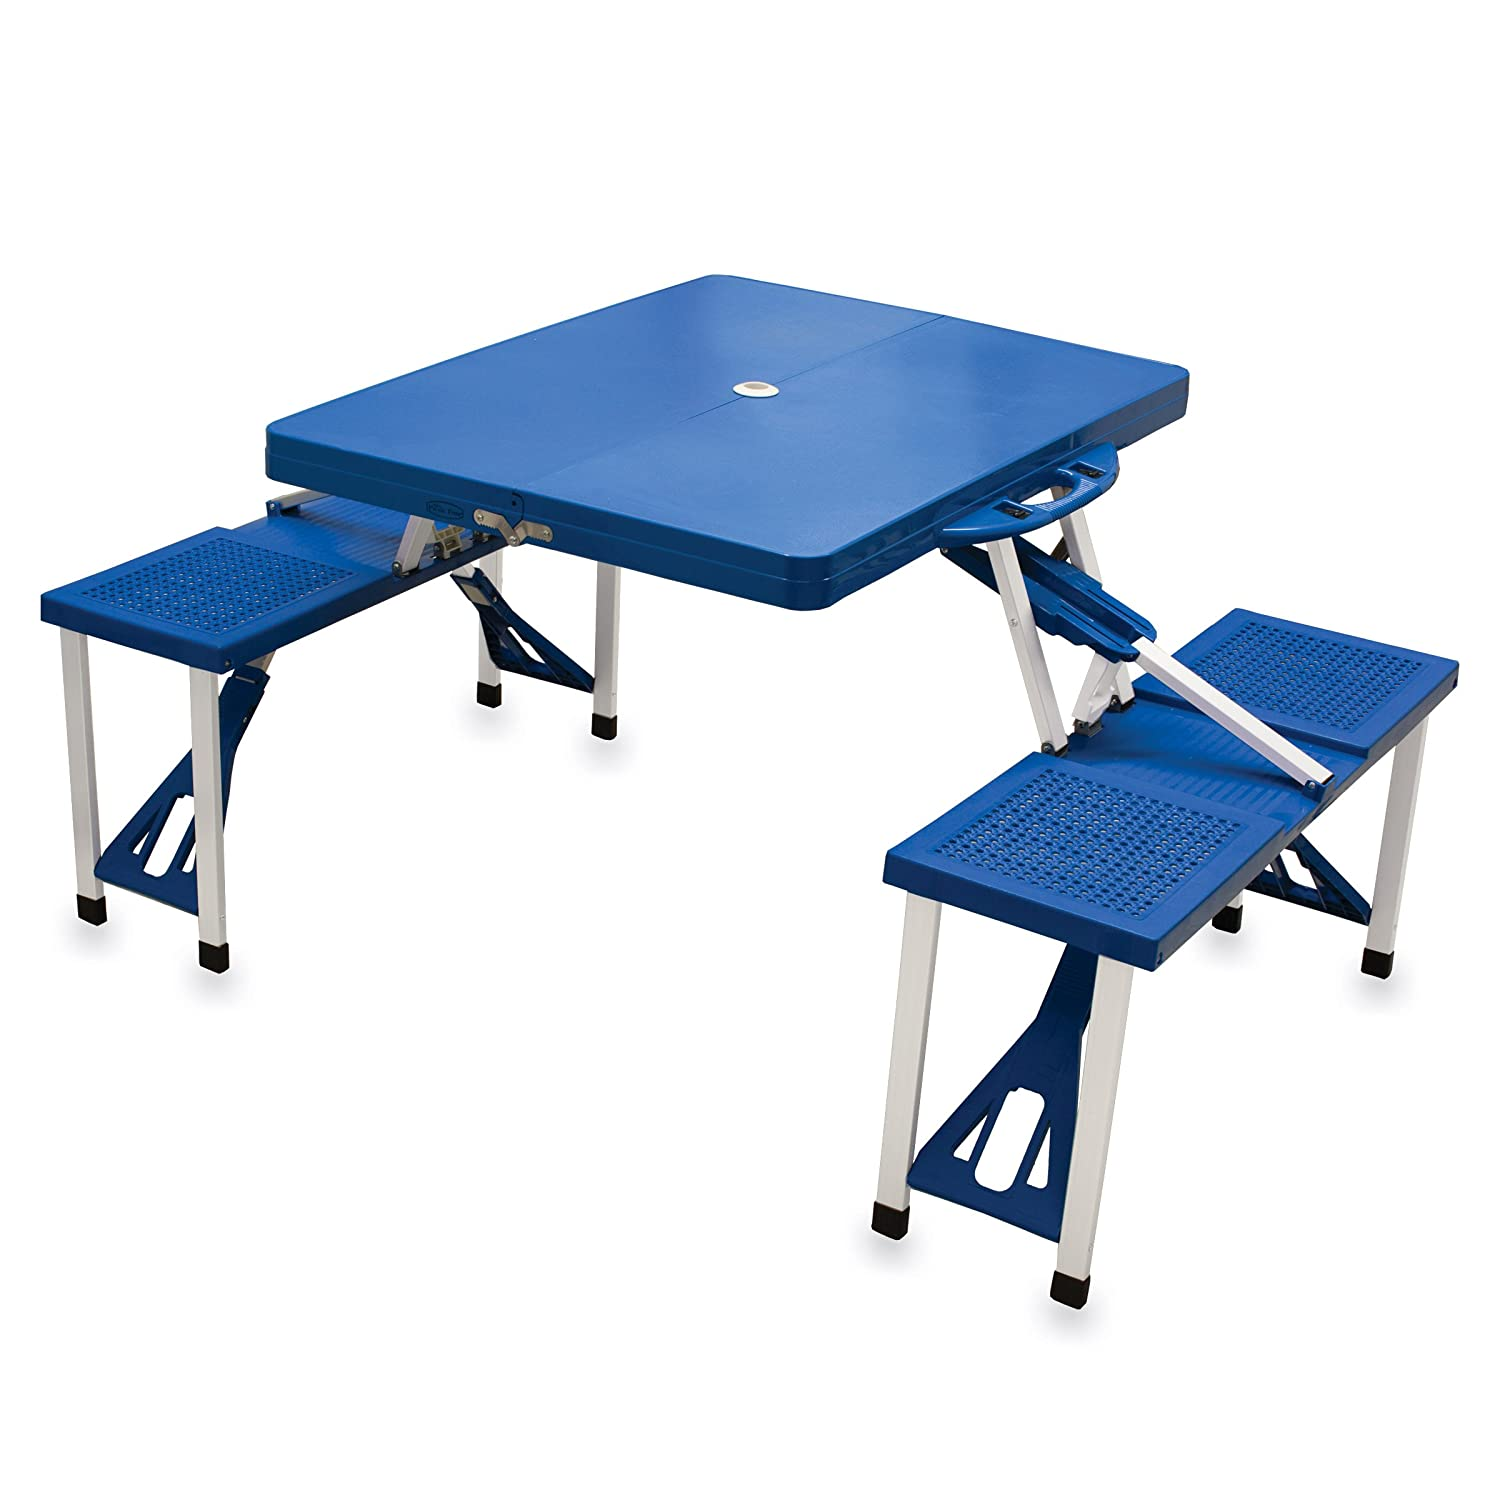 amazoncom picnic time folding picnic tableu0027 with seating for 4 blue picnic basket sets patio lawn u0026 garden - Folding Table And Chairs